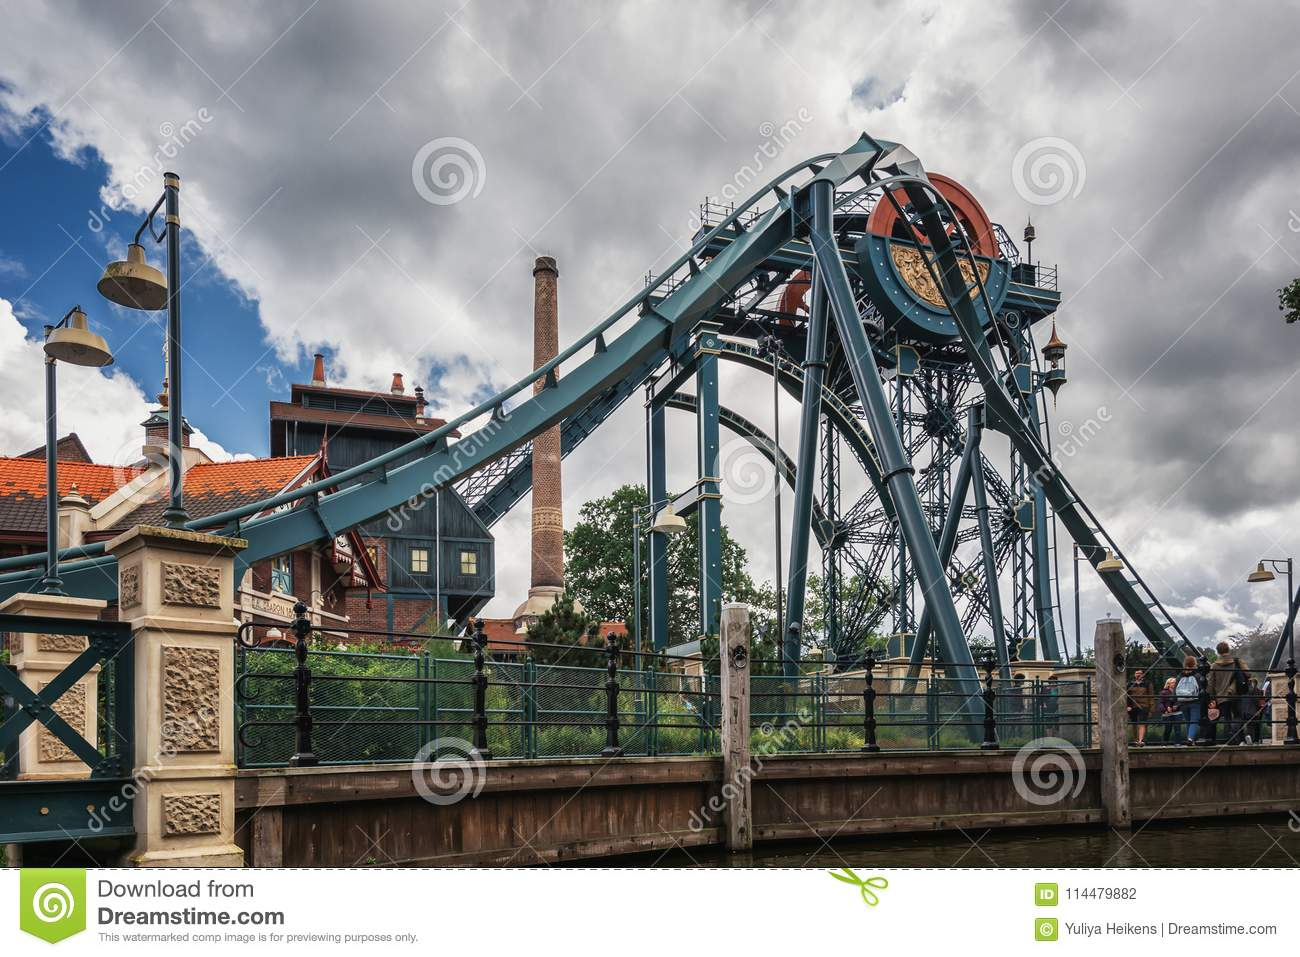 The dive coaster The Baron at the amusement park Efteling in the